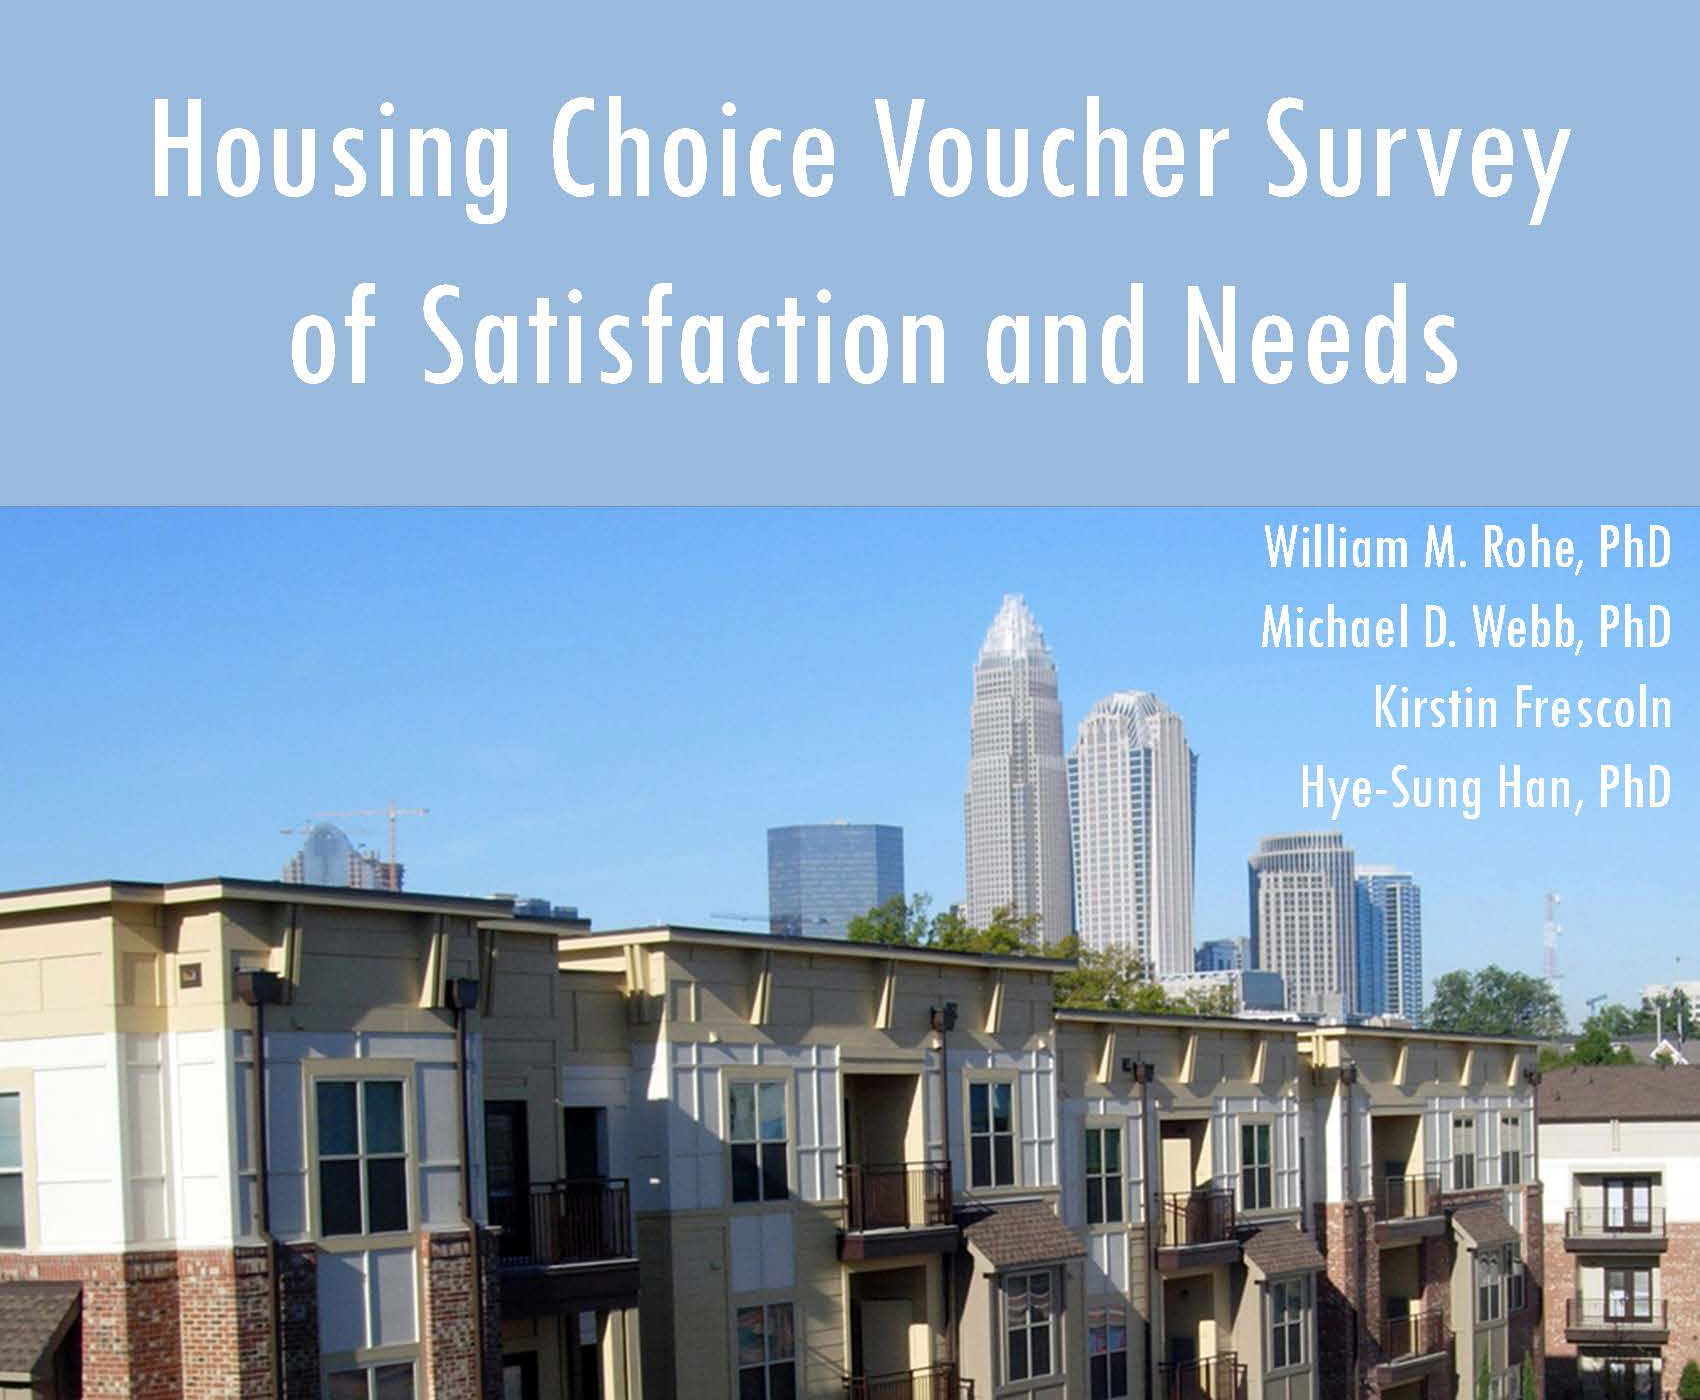 Housing Choice Voucher Survey Results Released